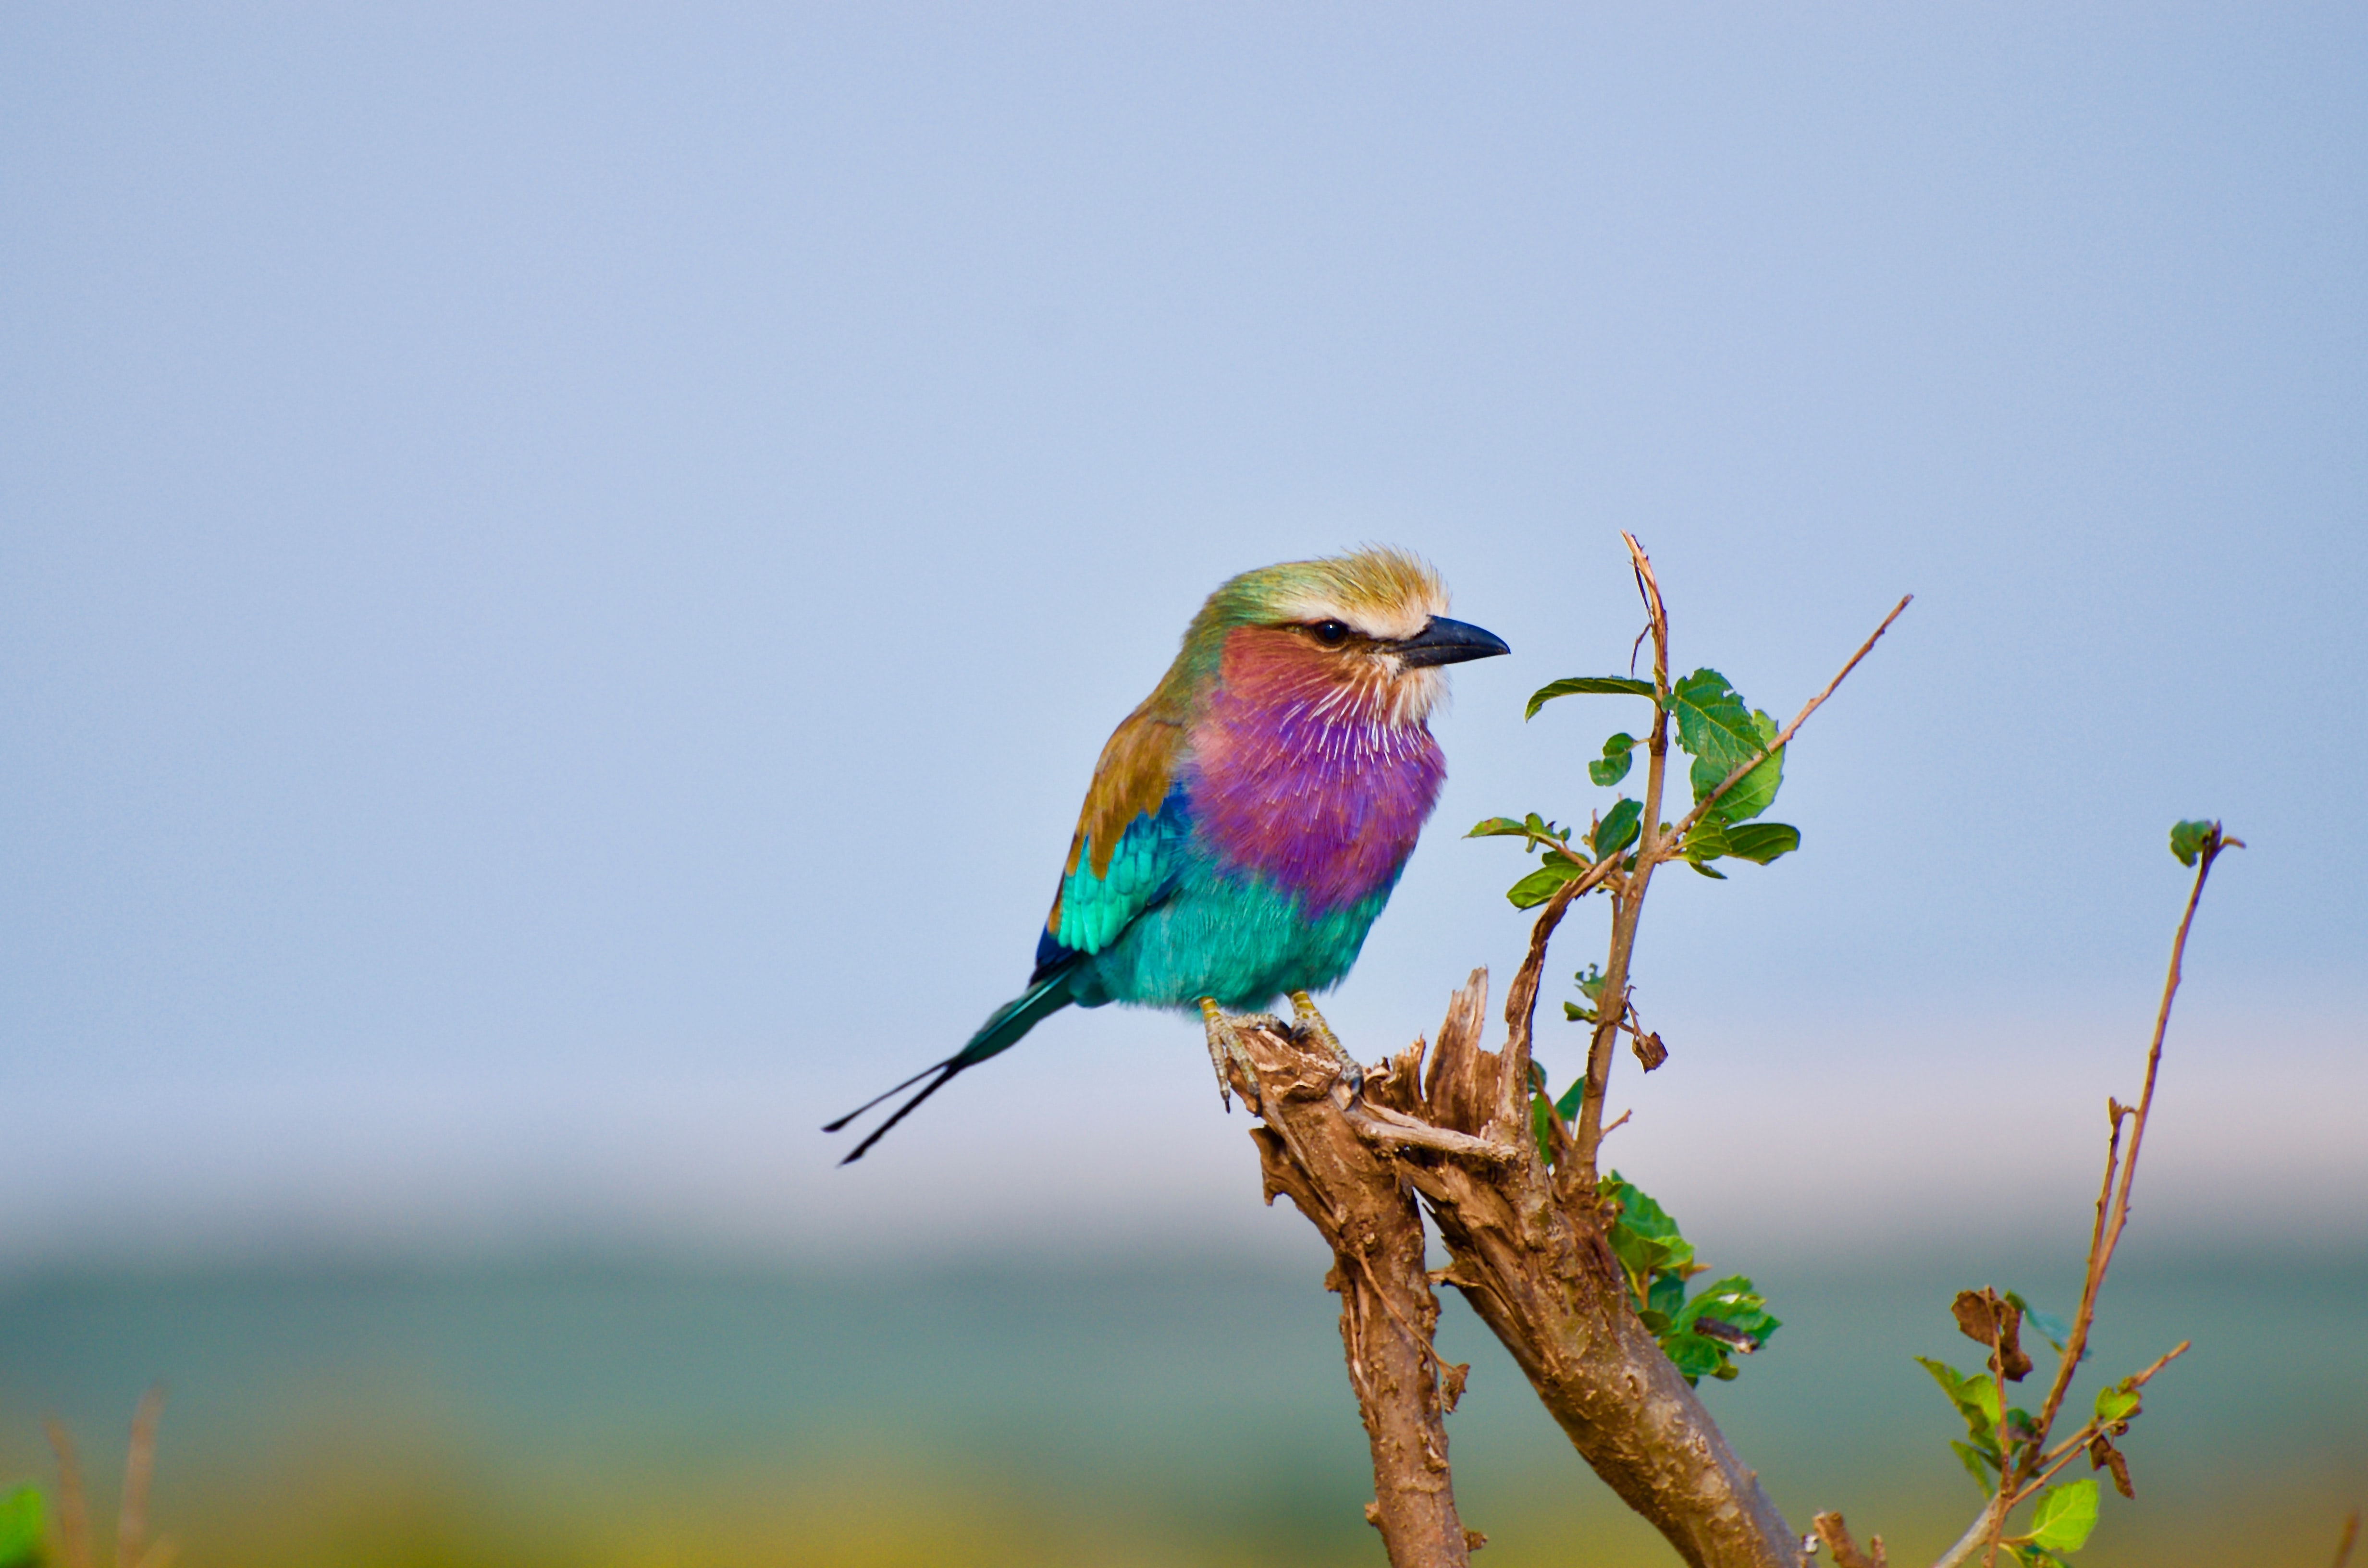 purple, blue, and brown bird perch on branch